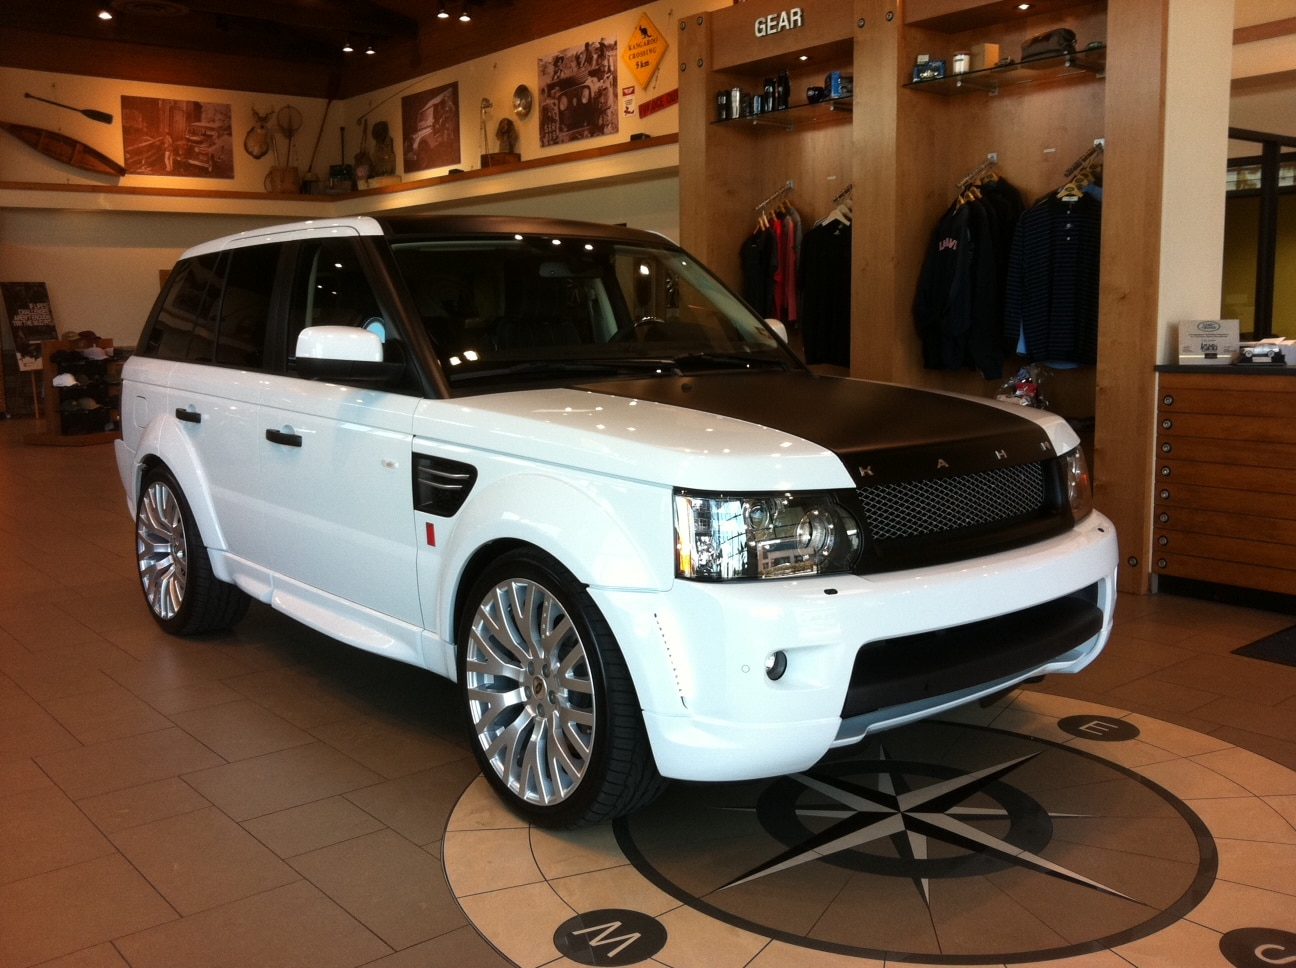 Land Rover Dallas New Land Rover Dealership In Dallas TX - Land rover repair dallas